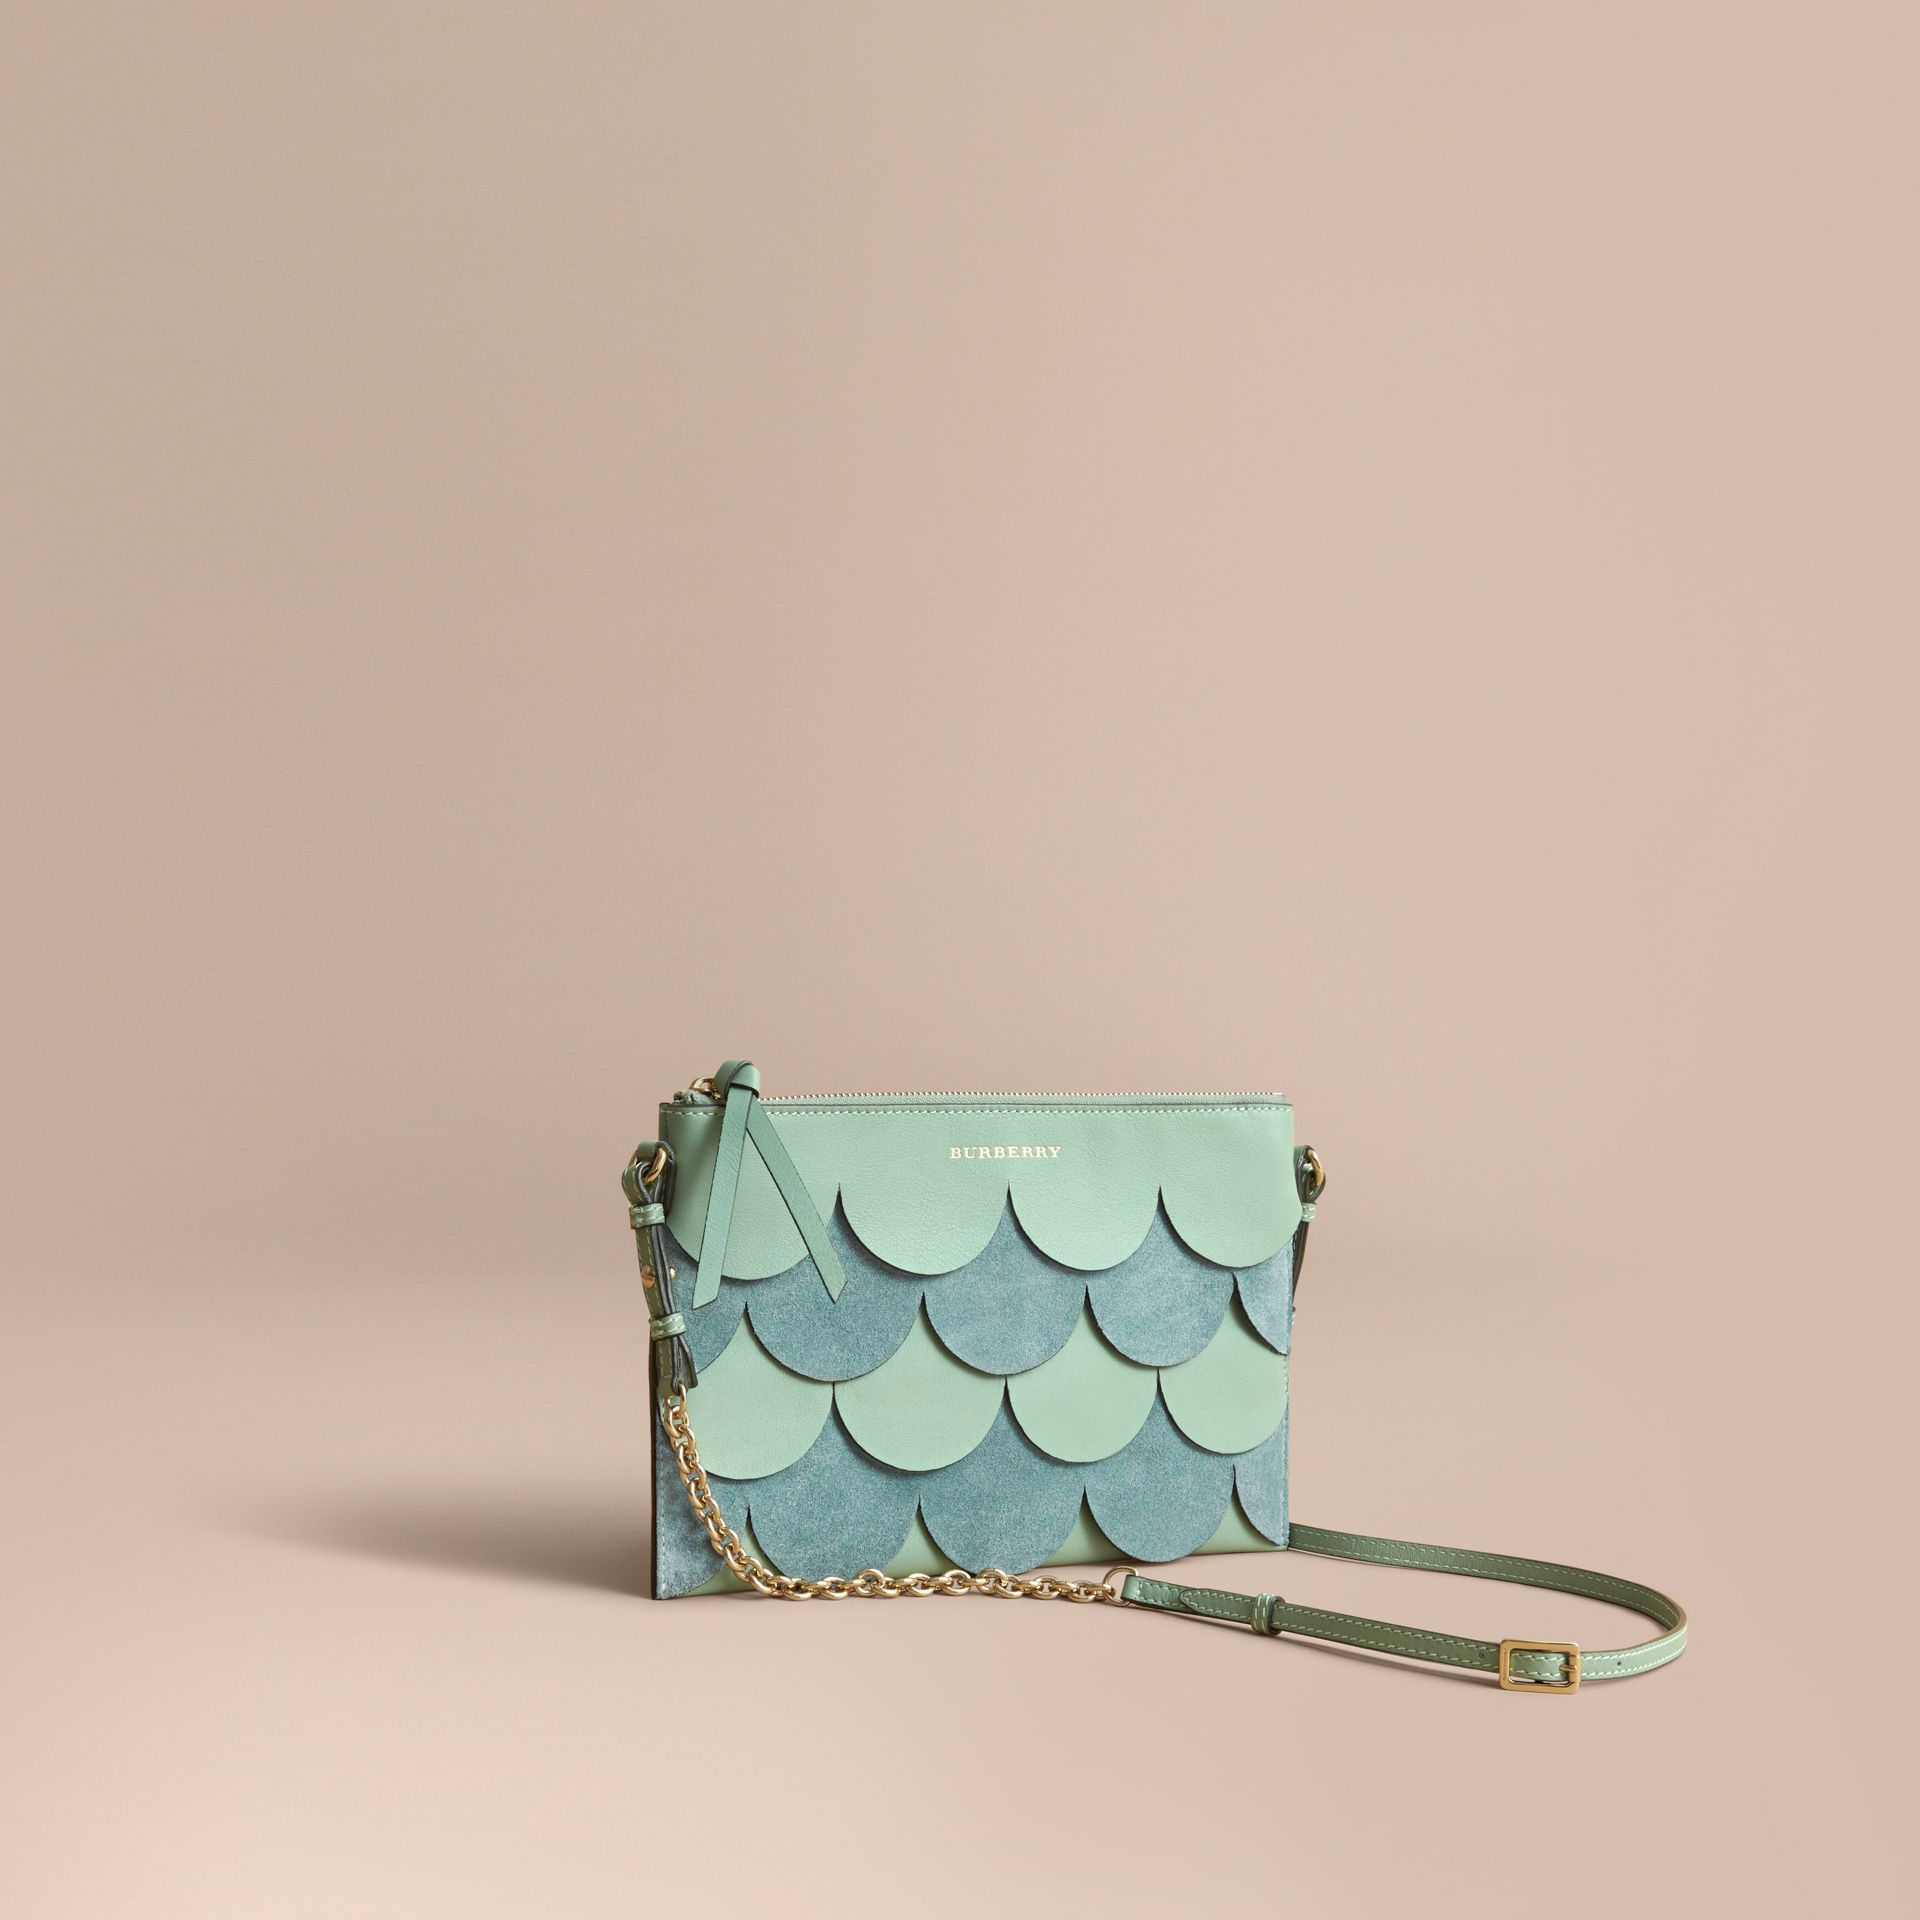 Two-tone Scalloped Leather and Suede Clutch Bag in Celadon Green - Women | Burberry Singapore - gallery image 1